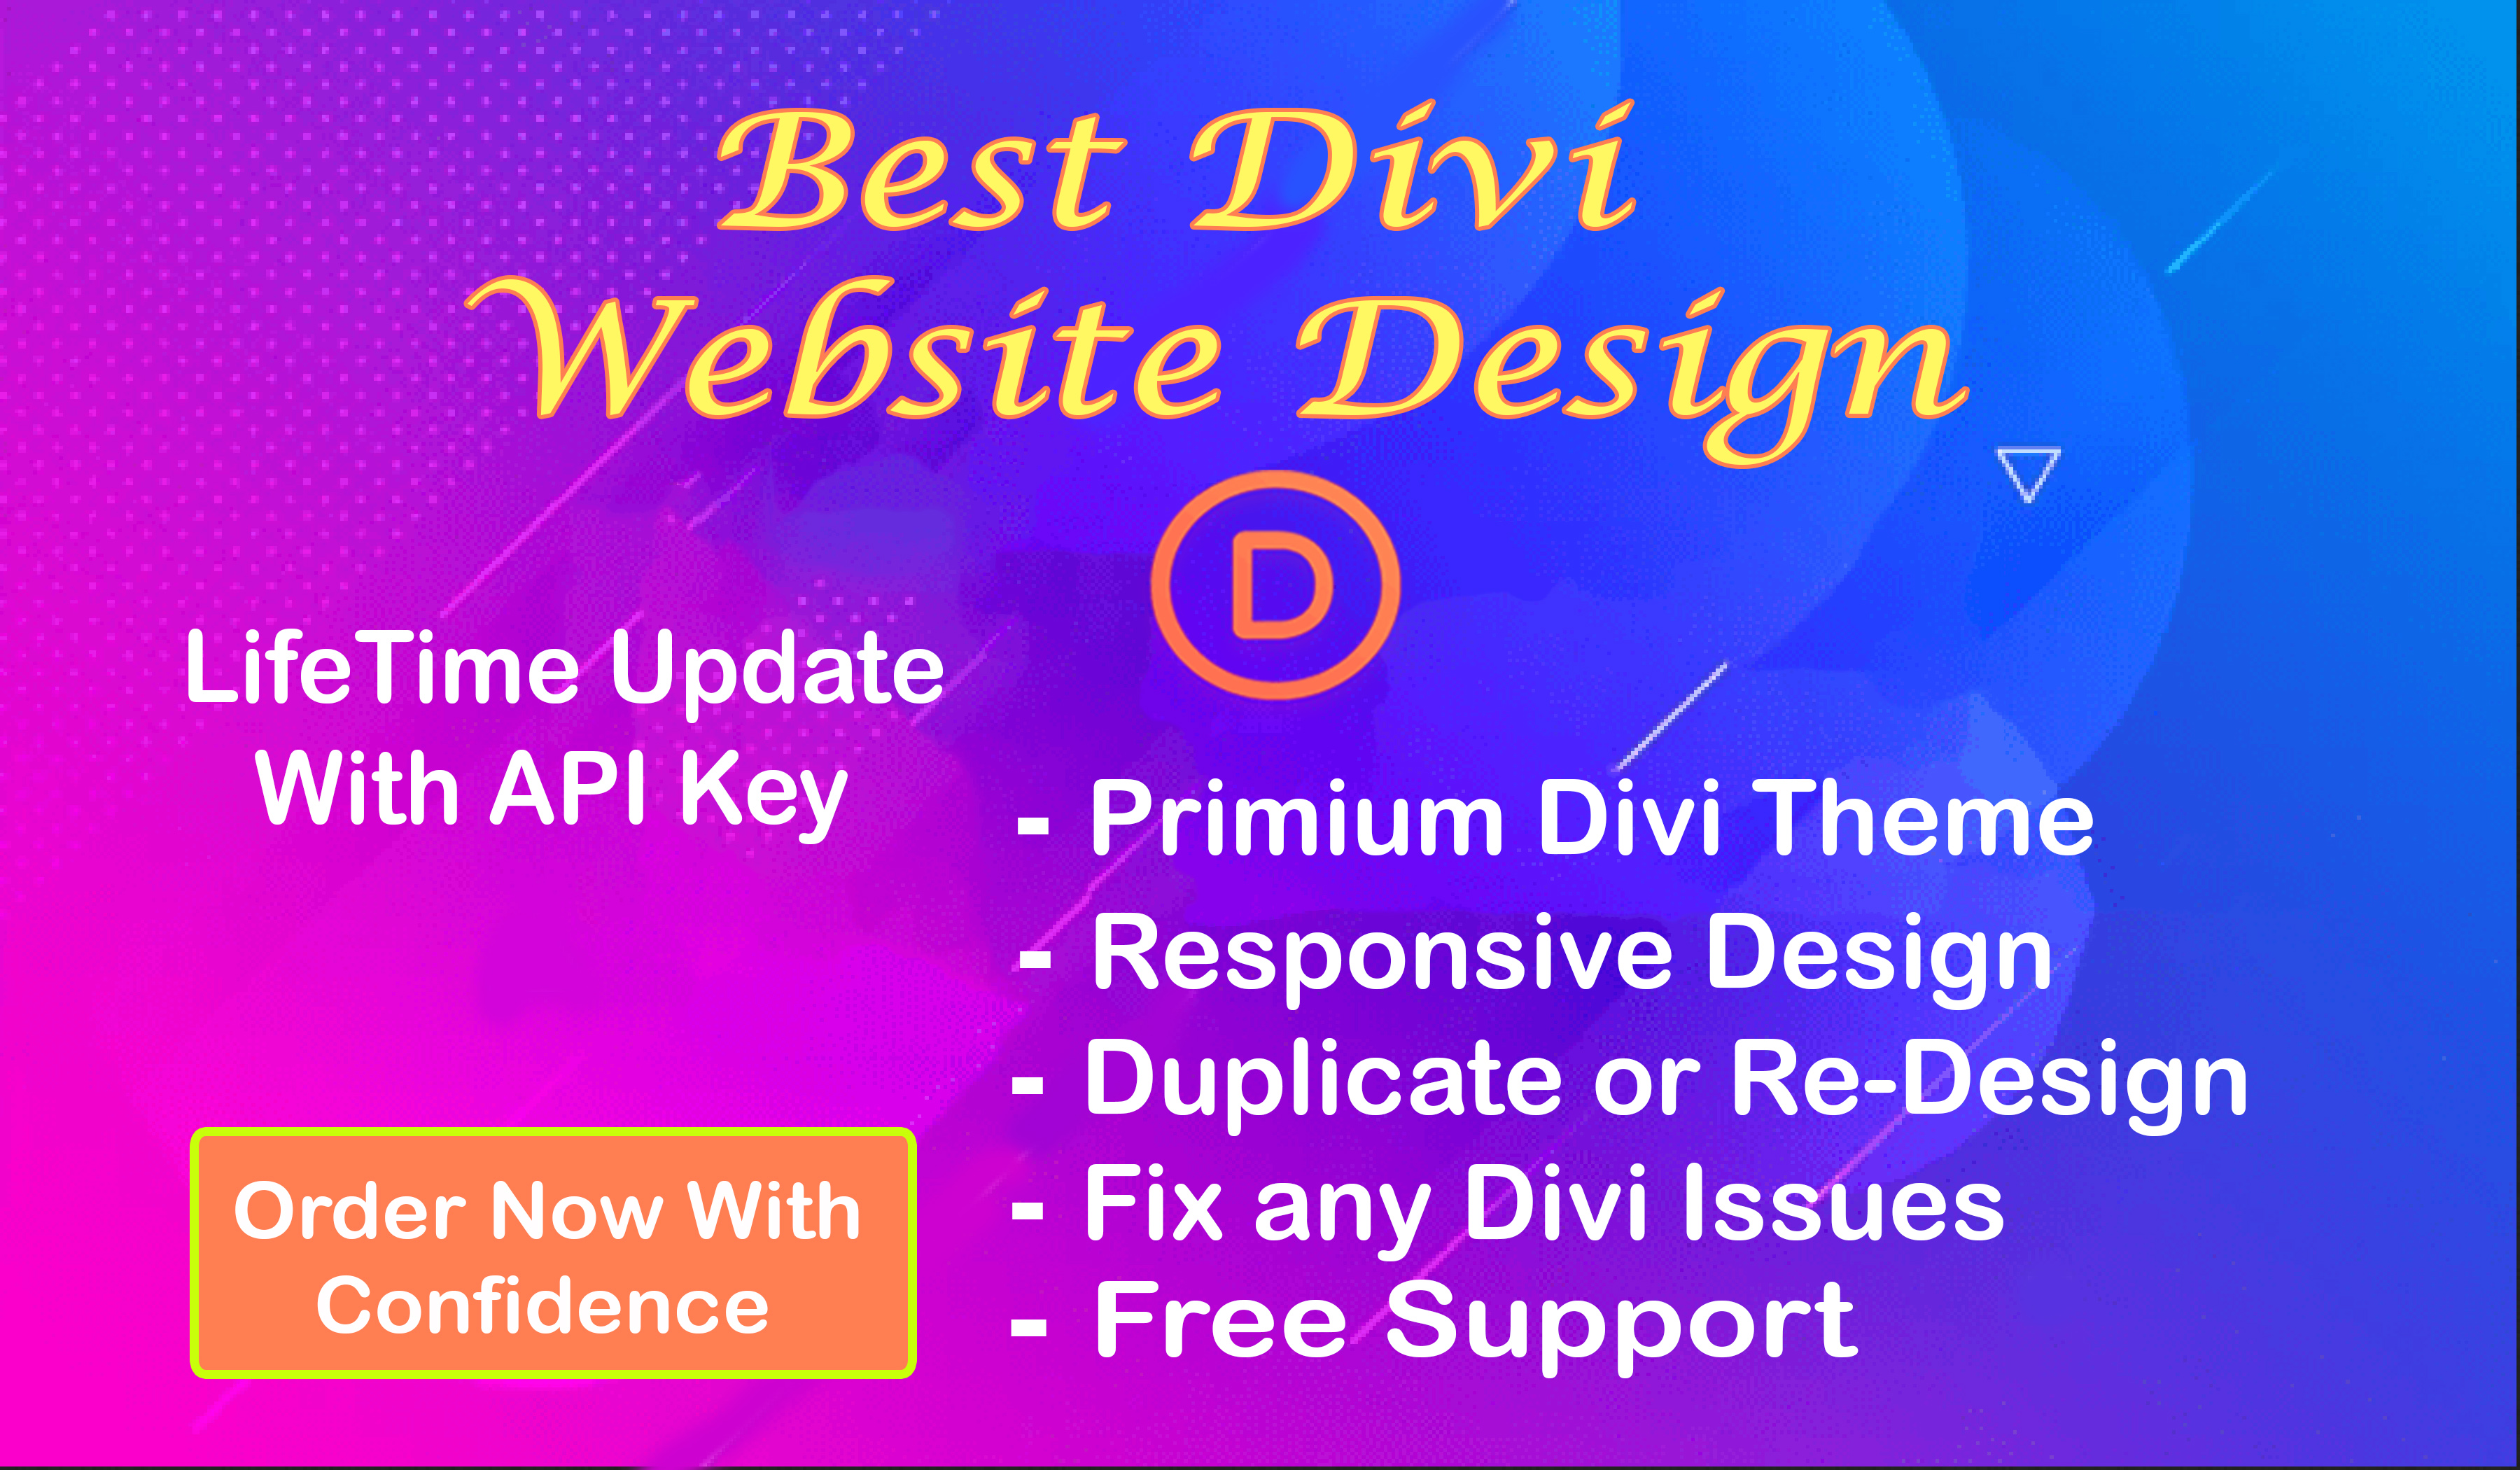 I will build your Full wordpress website using divi theme and do customization